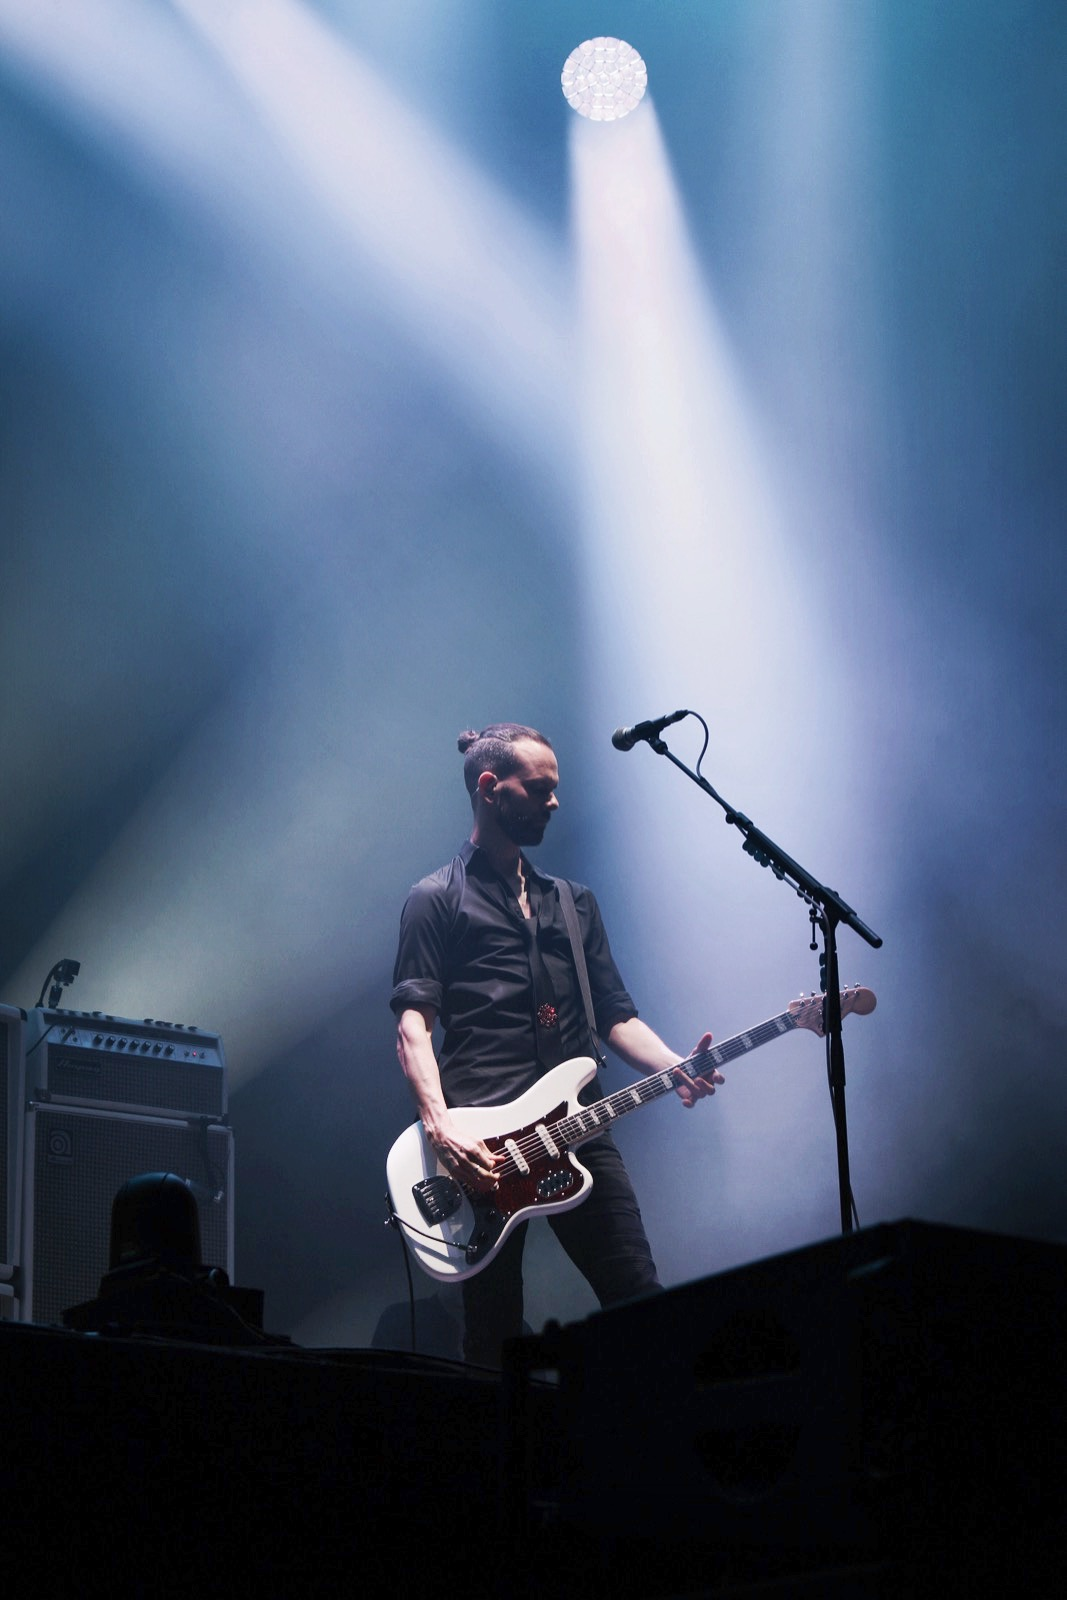 02-Placebo-fm4-frequency-festival-2017-thexed-xedblog